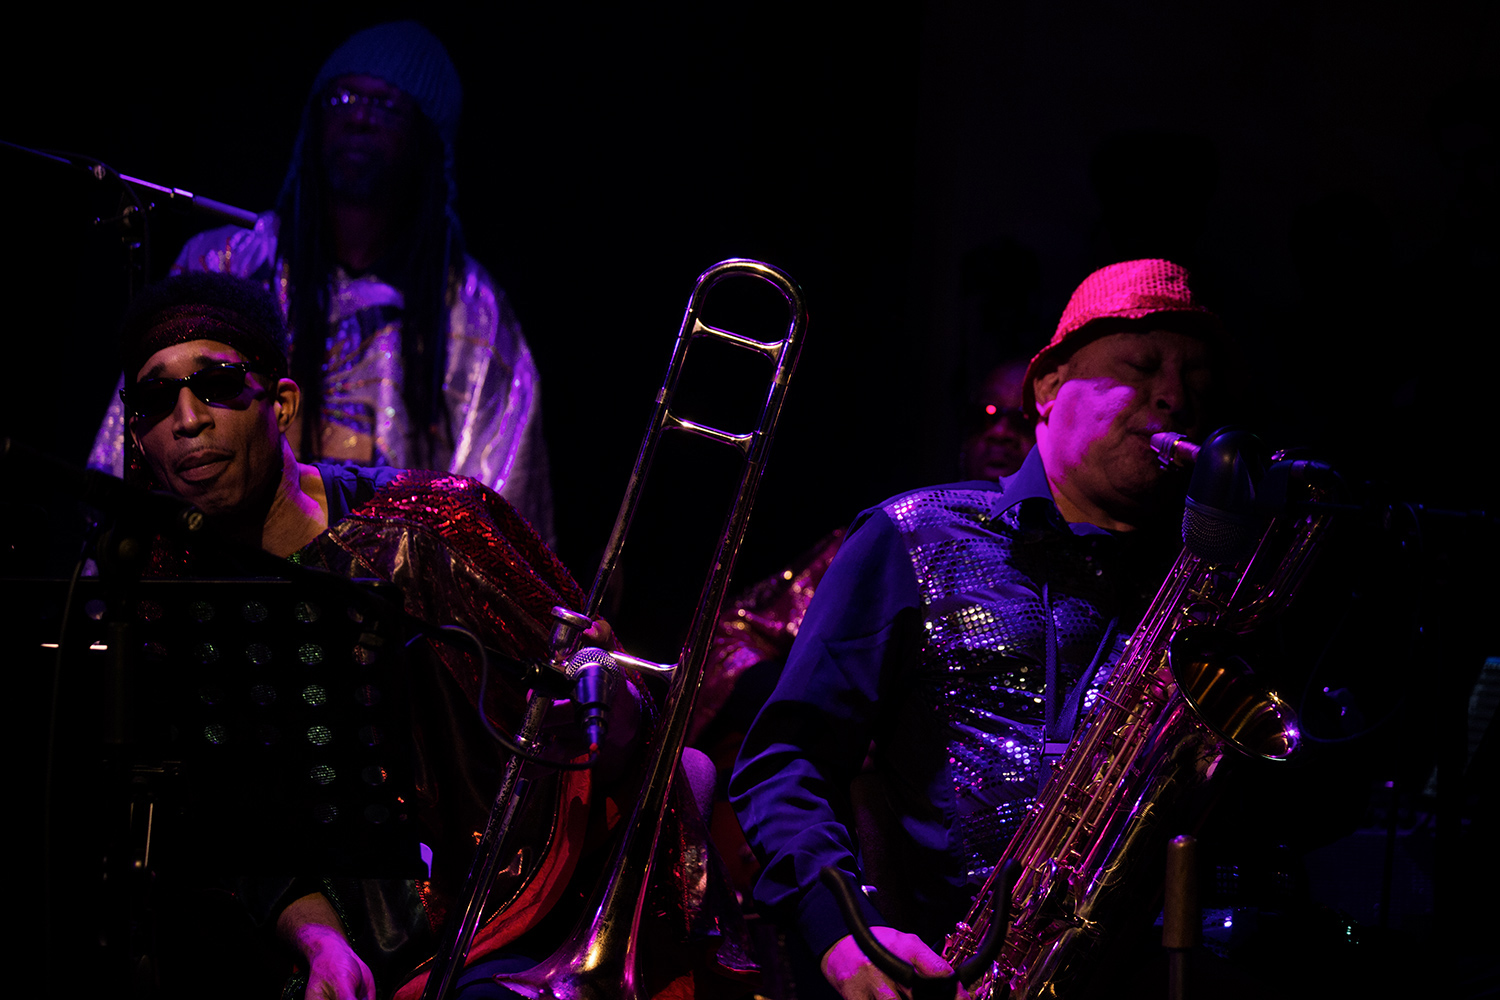 Sun Ra Arkestra directed by Marshall Allen by Laurent Orseau - Concert - Les Ateliers Claus - Brussels, Belgium #18